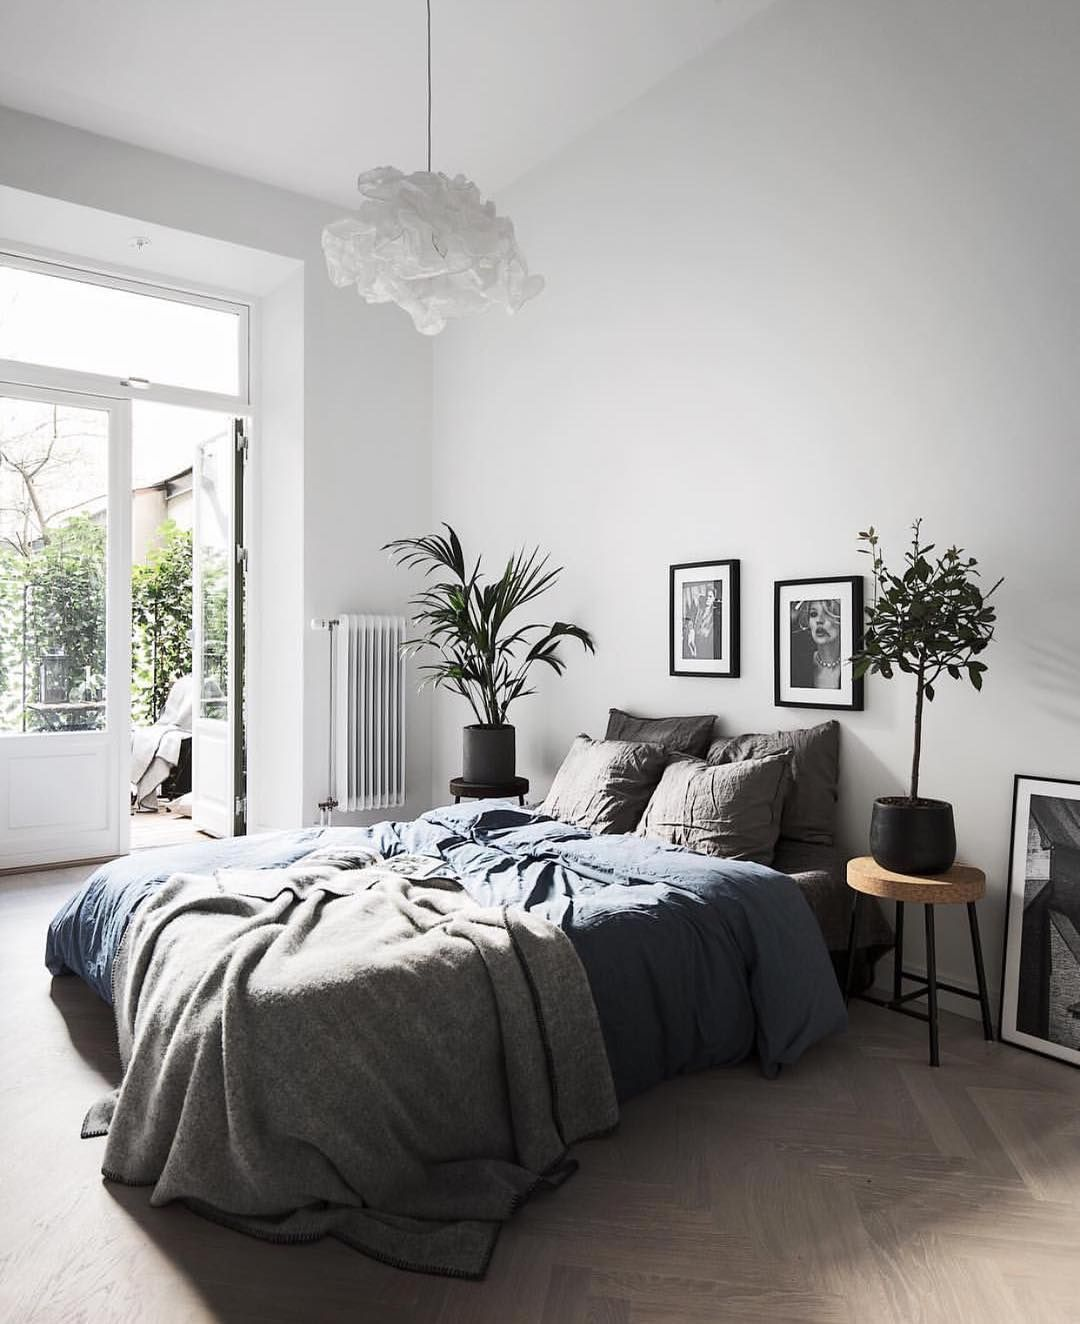 Room Decor Bedroom Decor Und: Sunday Bedroom Inspo. Don't Mind If I Do! Styling By